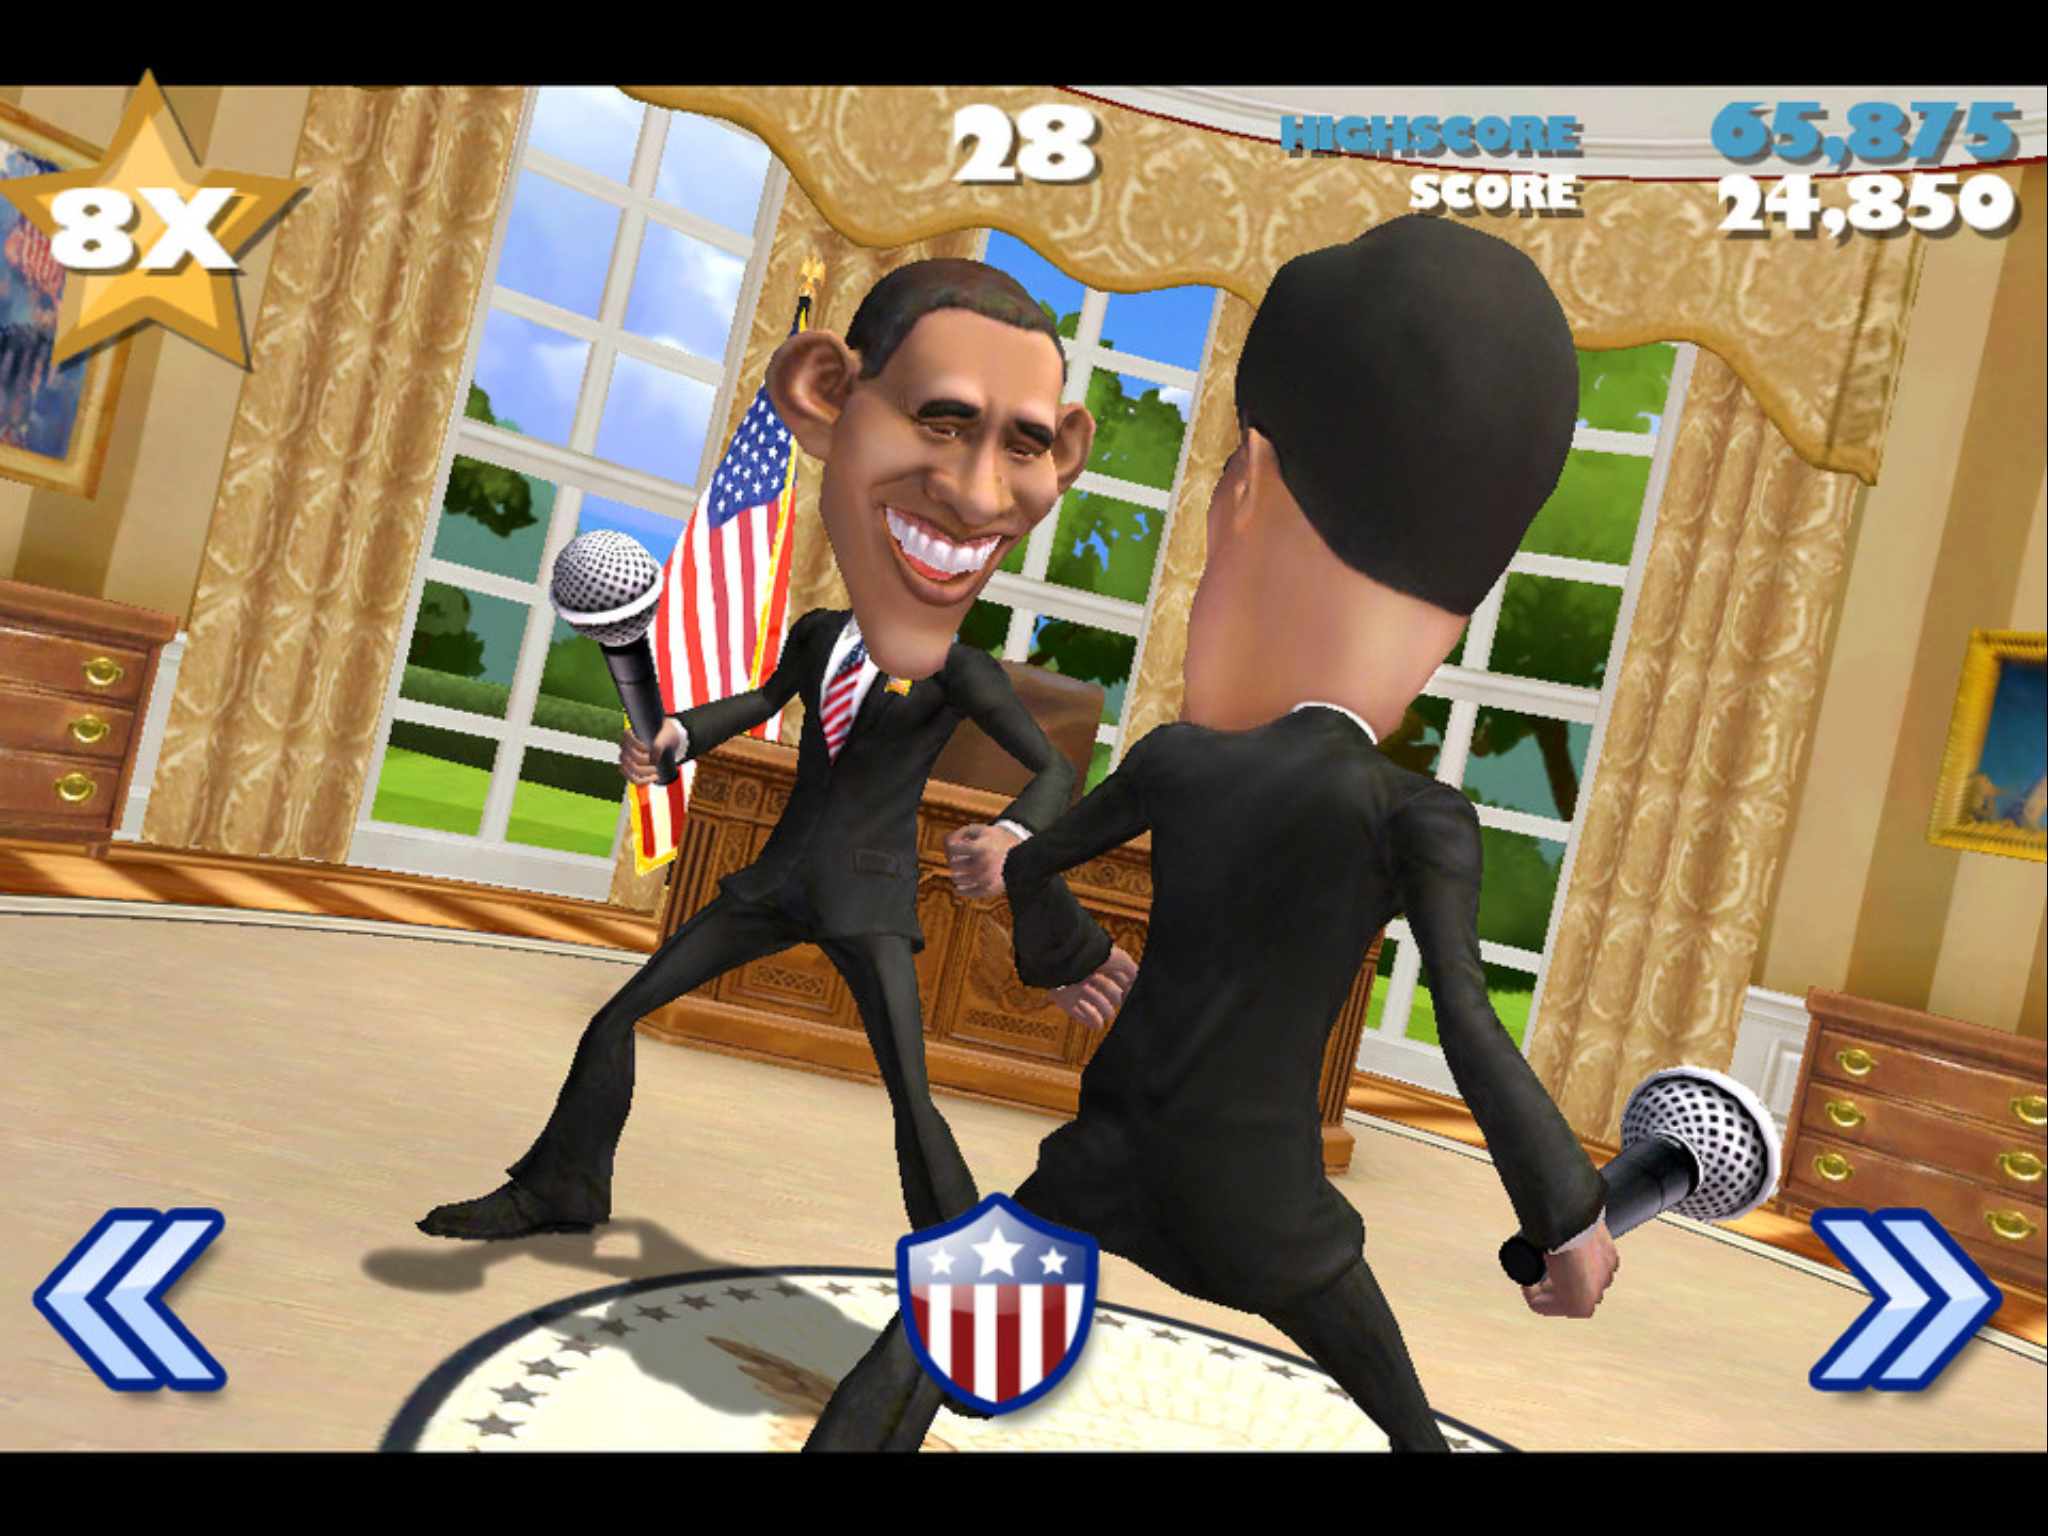 VOTE!!! President Obama vs Mitt Romney from the makers of Infinity Blade